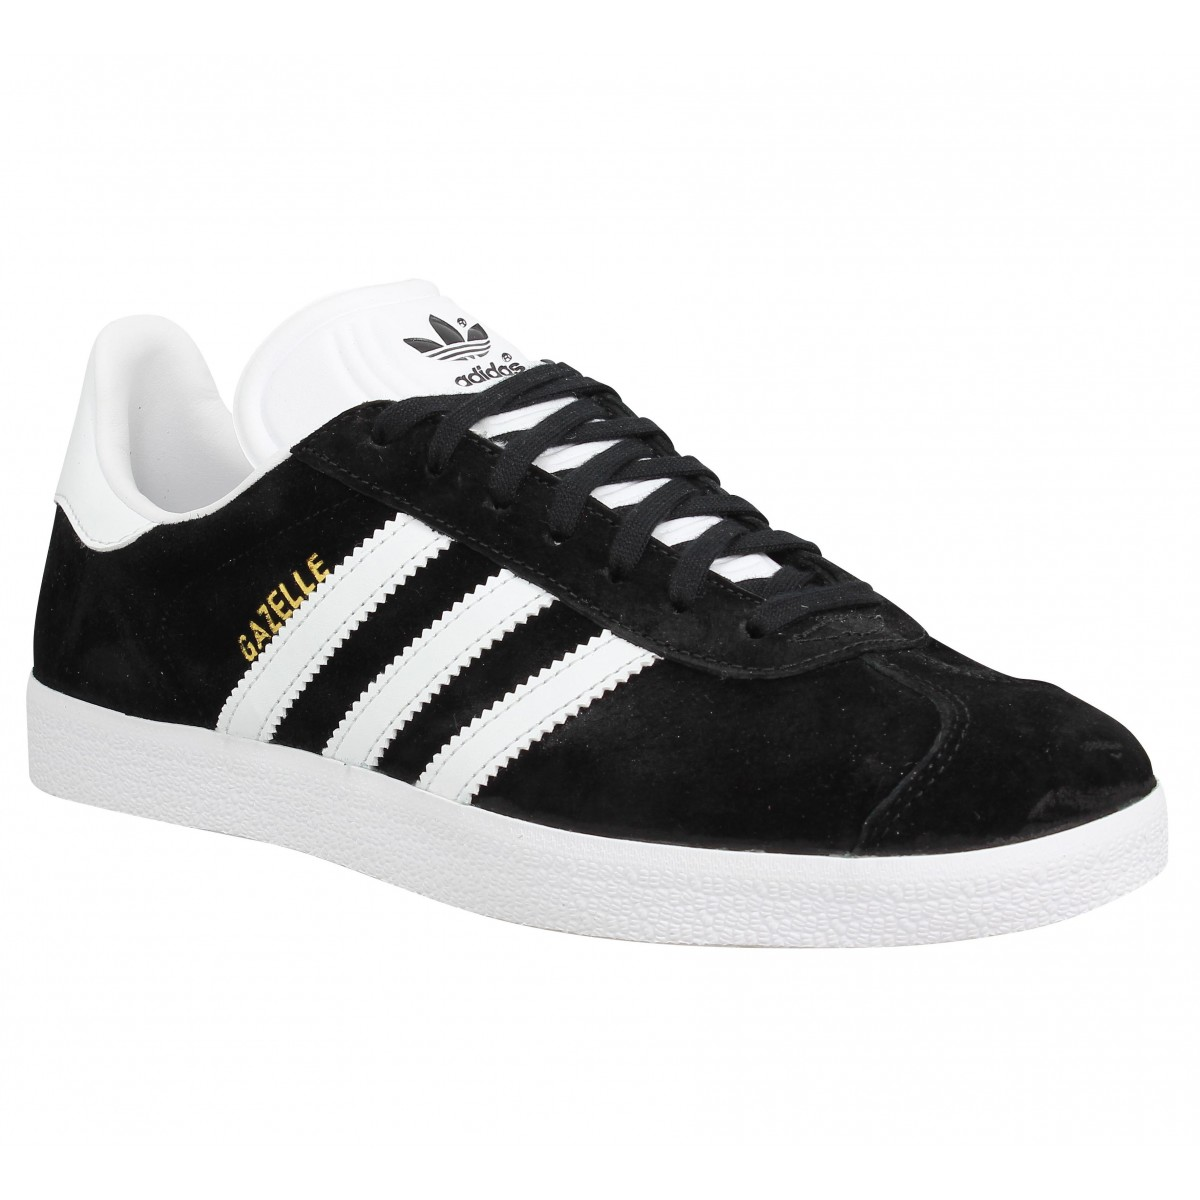 soldes adidas gazelle noir femme fanny chaussures. Black Bedroom Furniture Sets. Home Design Ideas